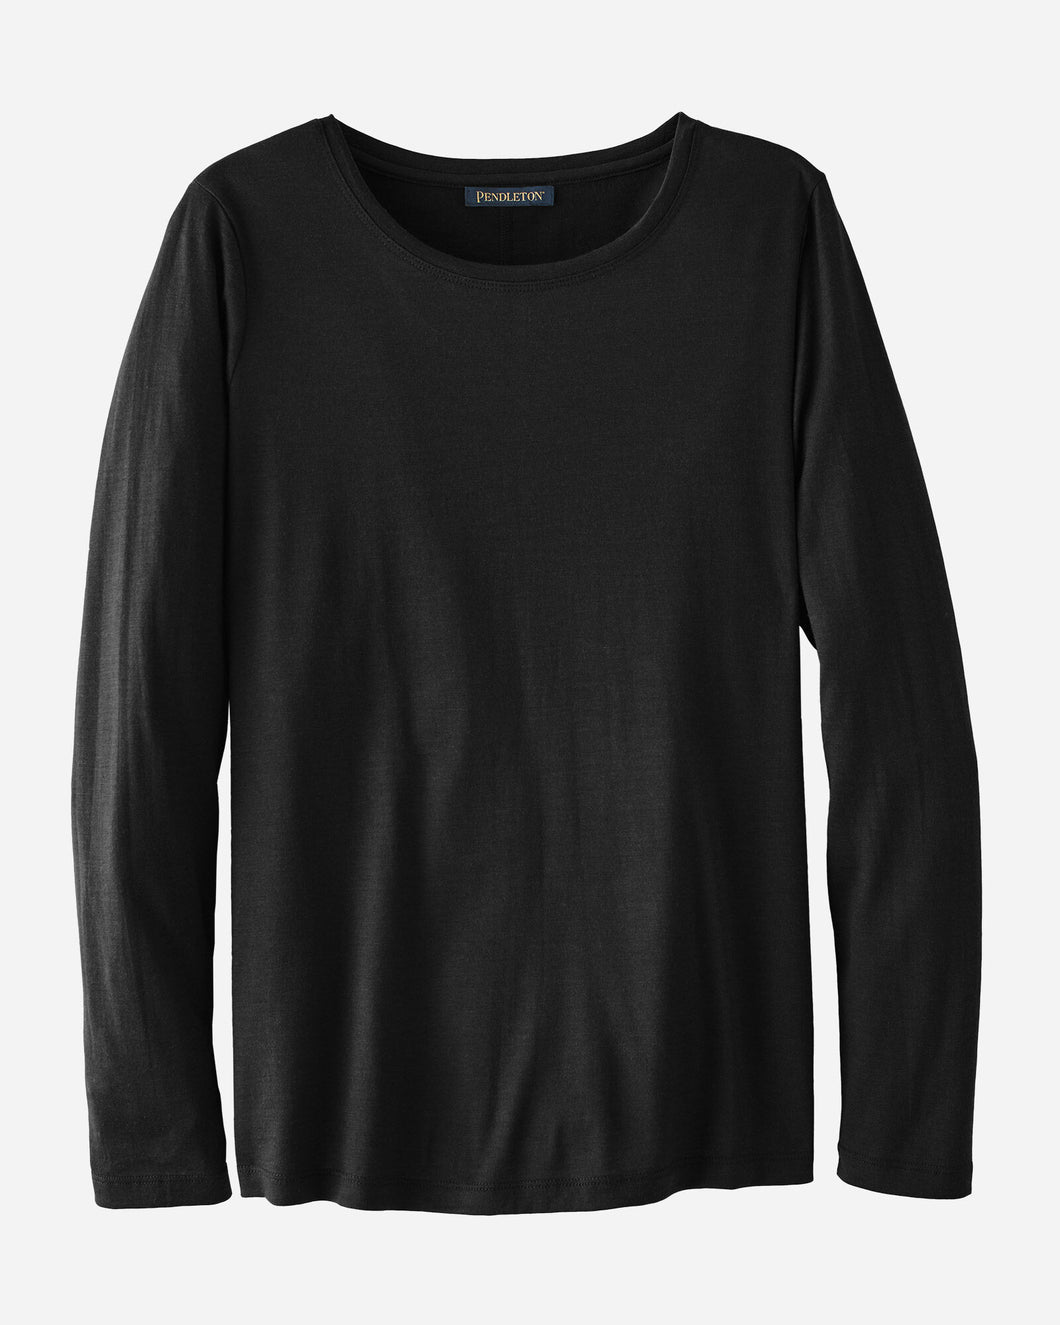 Pendleton Woolen Mills cotton ribbed long sleeve shirt top women black layering clothing